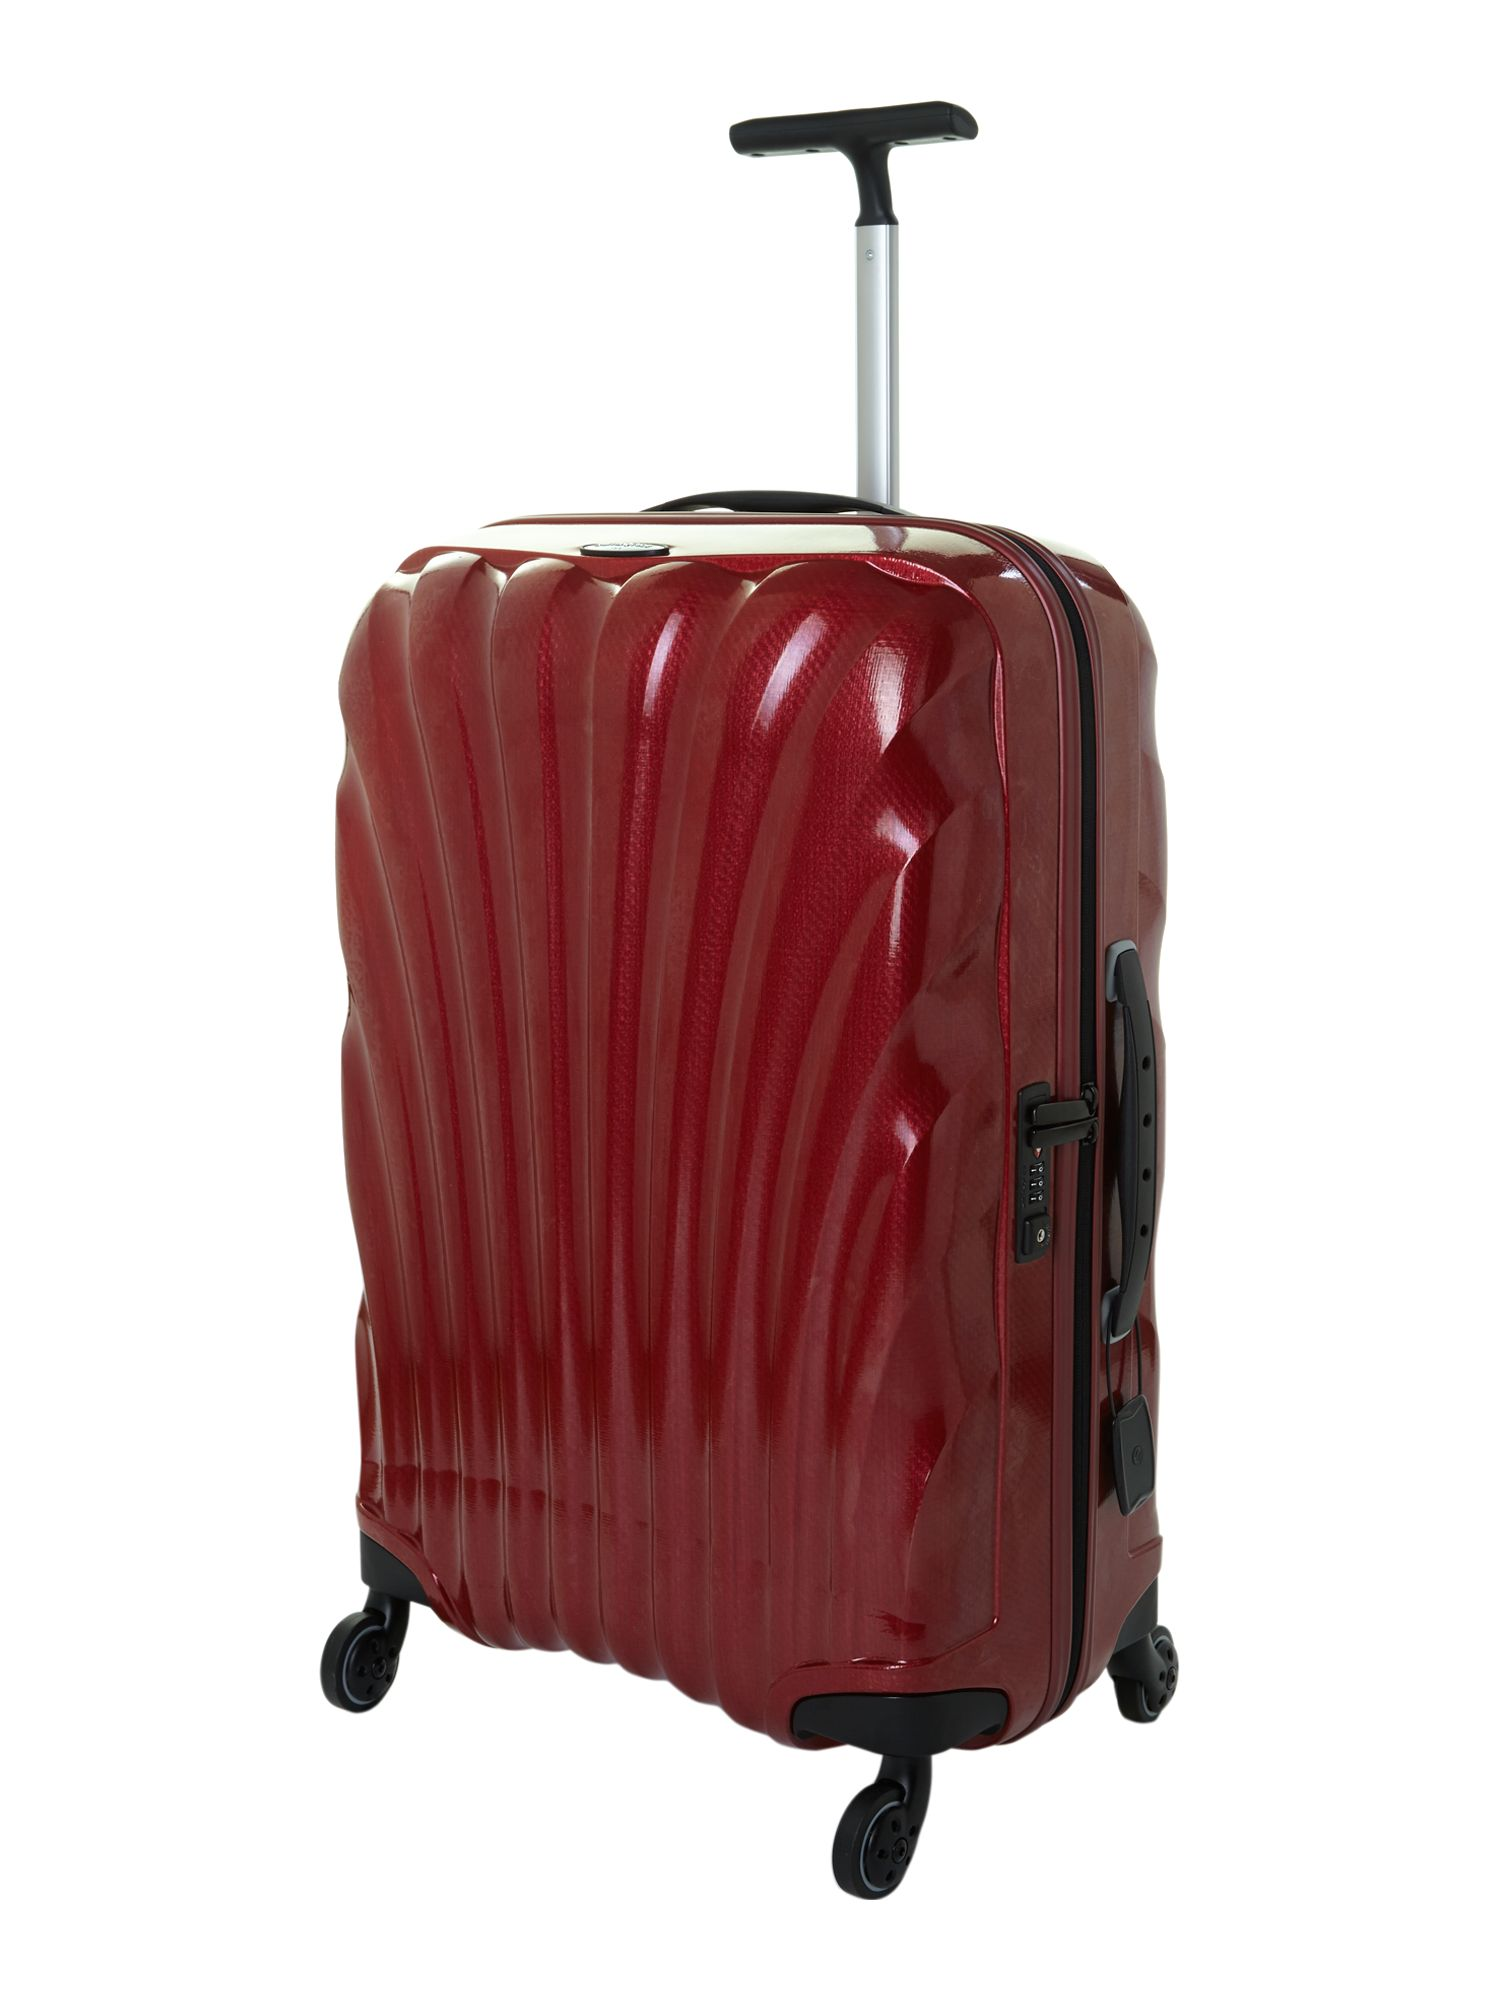 New cosmolite 4-wheel red medium suitcase